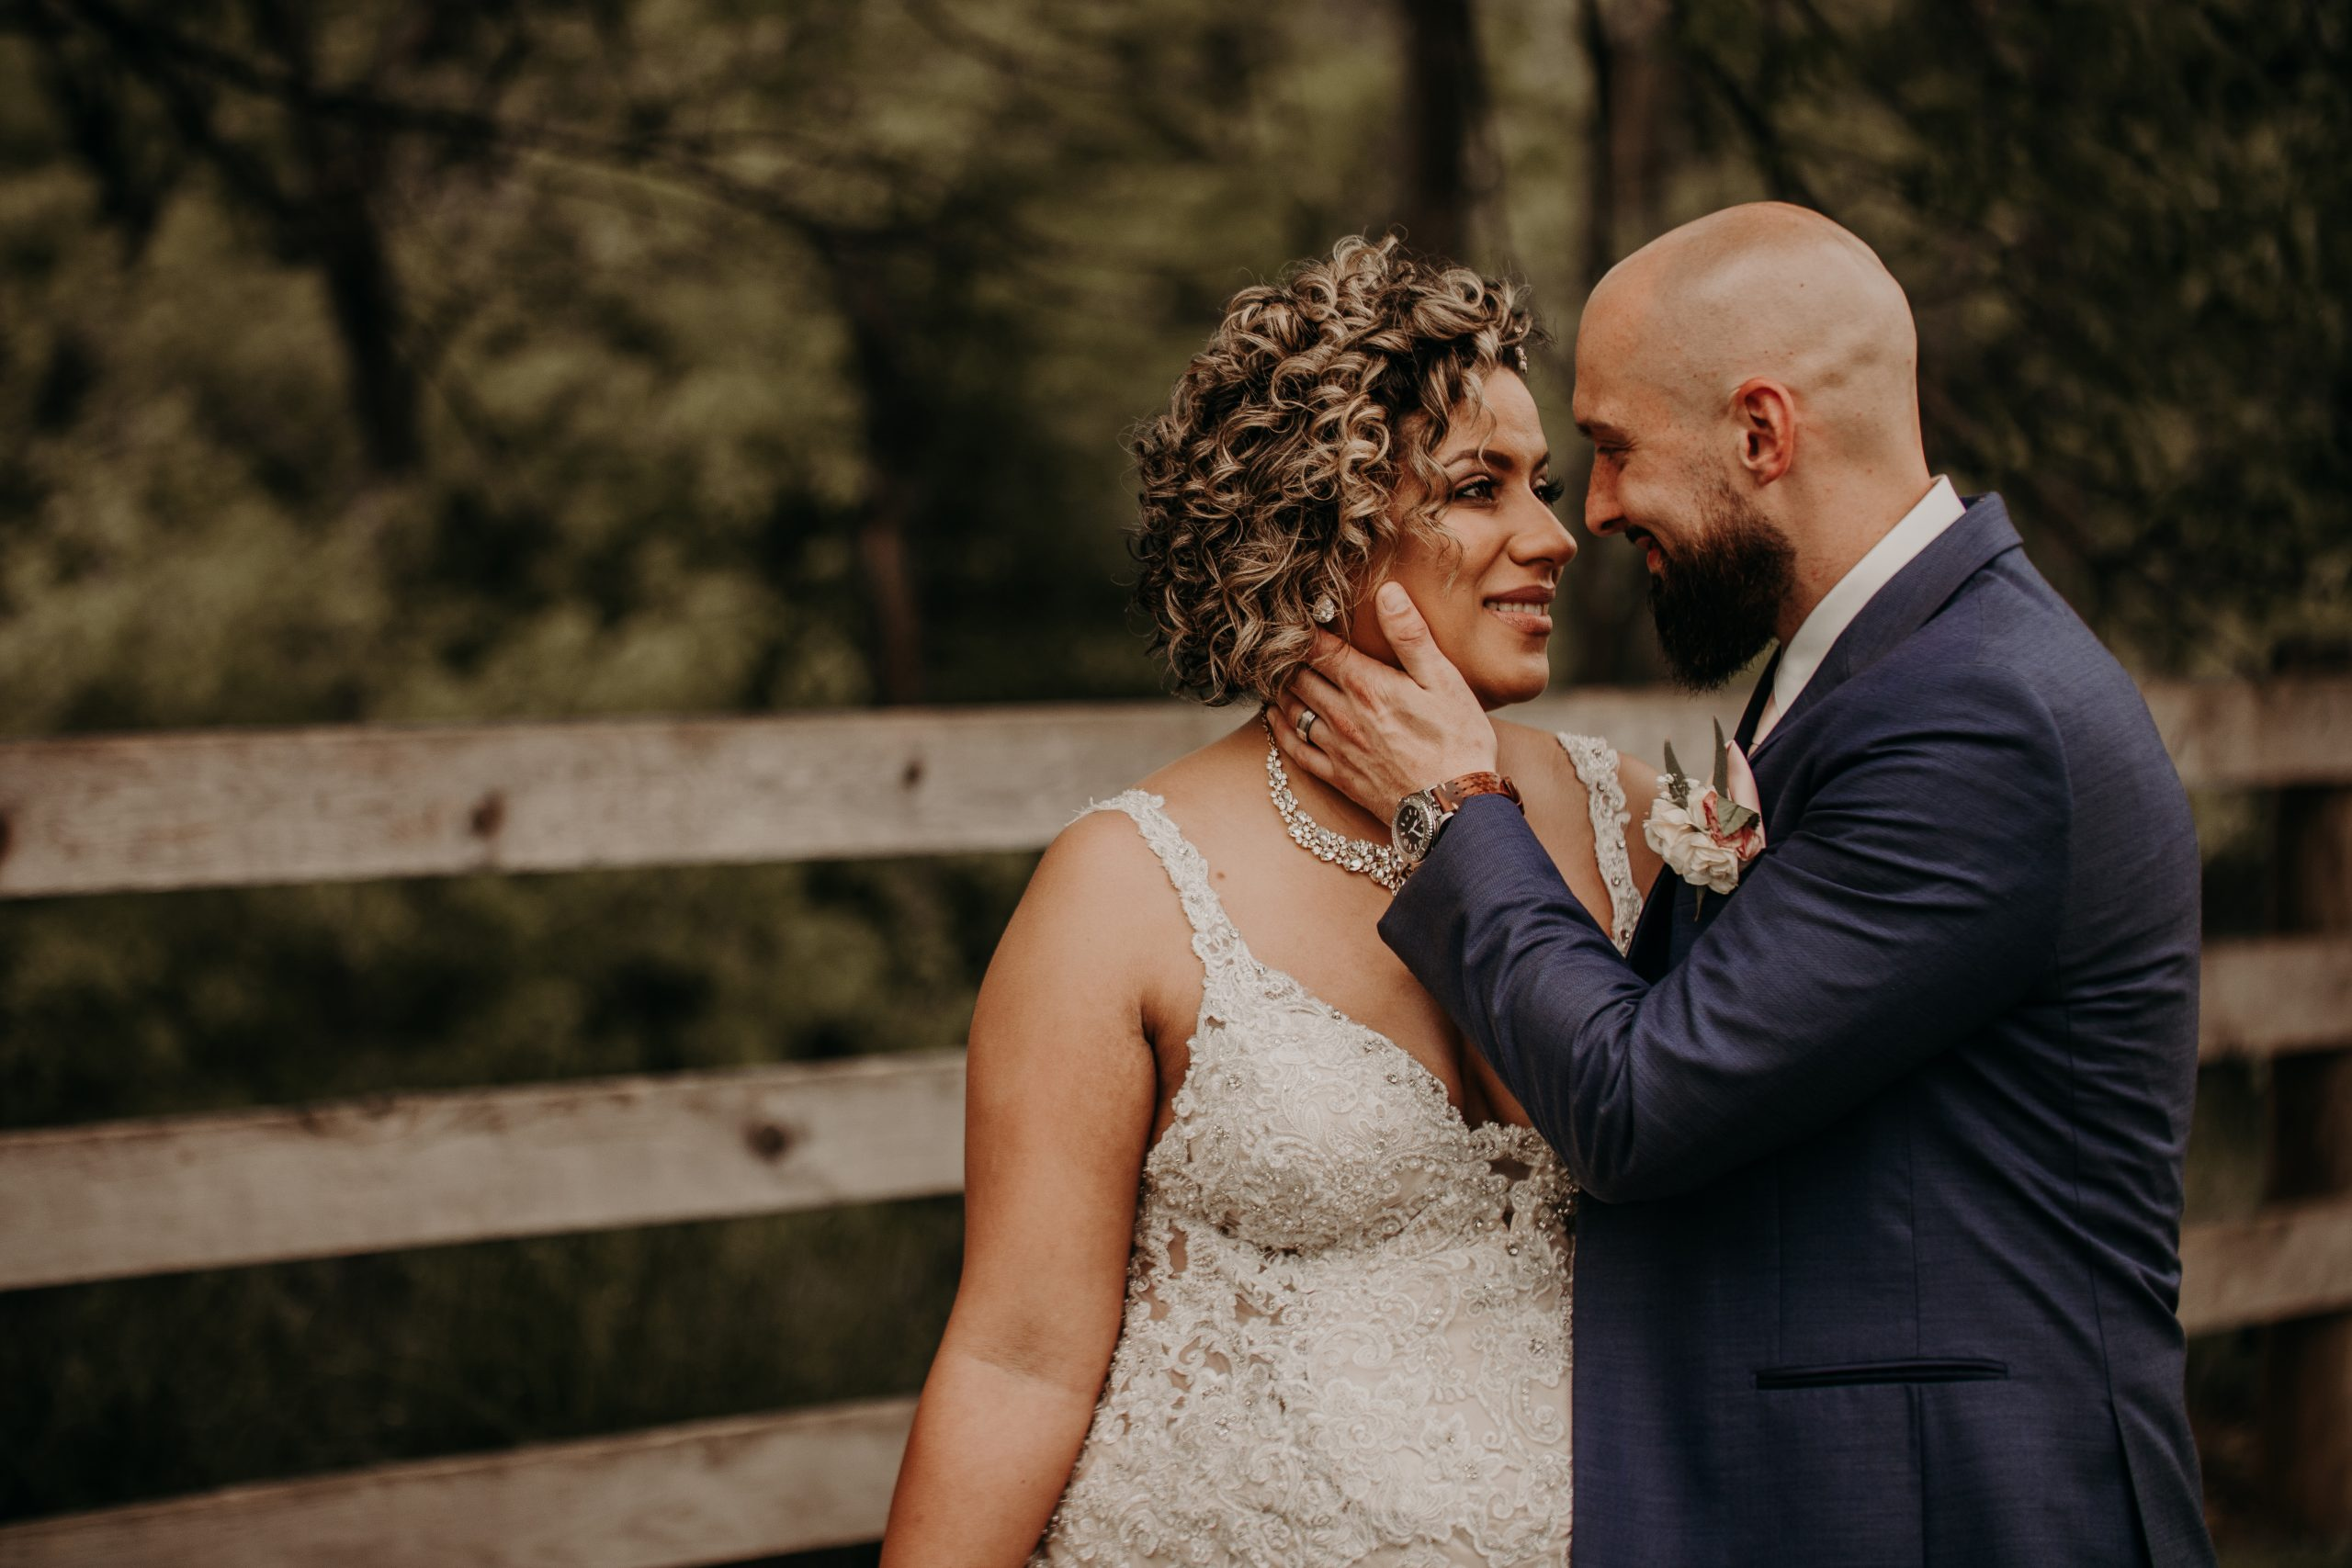 the newlyweds share a passionate look. Christine and Richard wed on the Chestnut Hill Villa grounds on May of 2019. This organic ethereal styled wedding was captured by Garnet Dahlia Photography and featured on Dream Weddings.